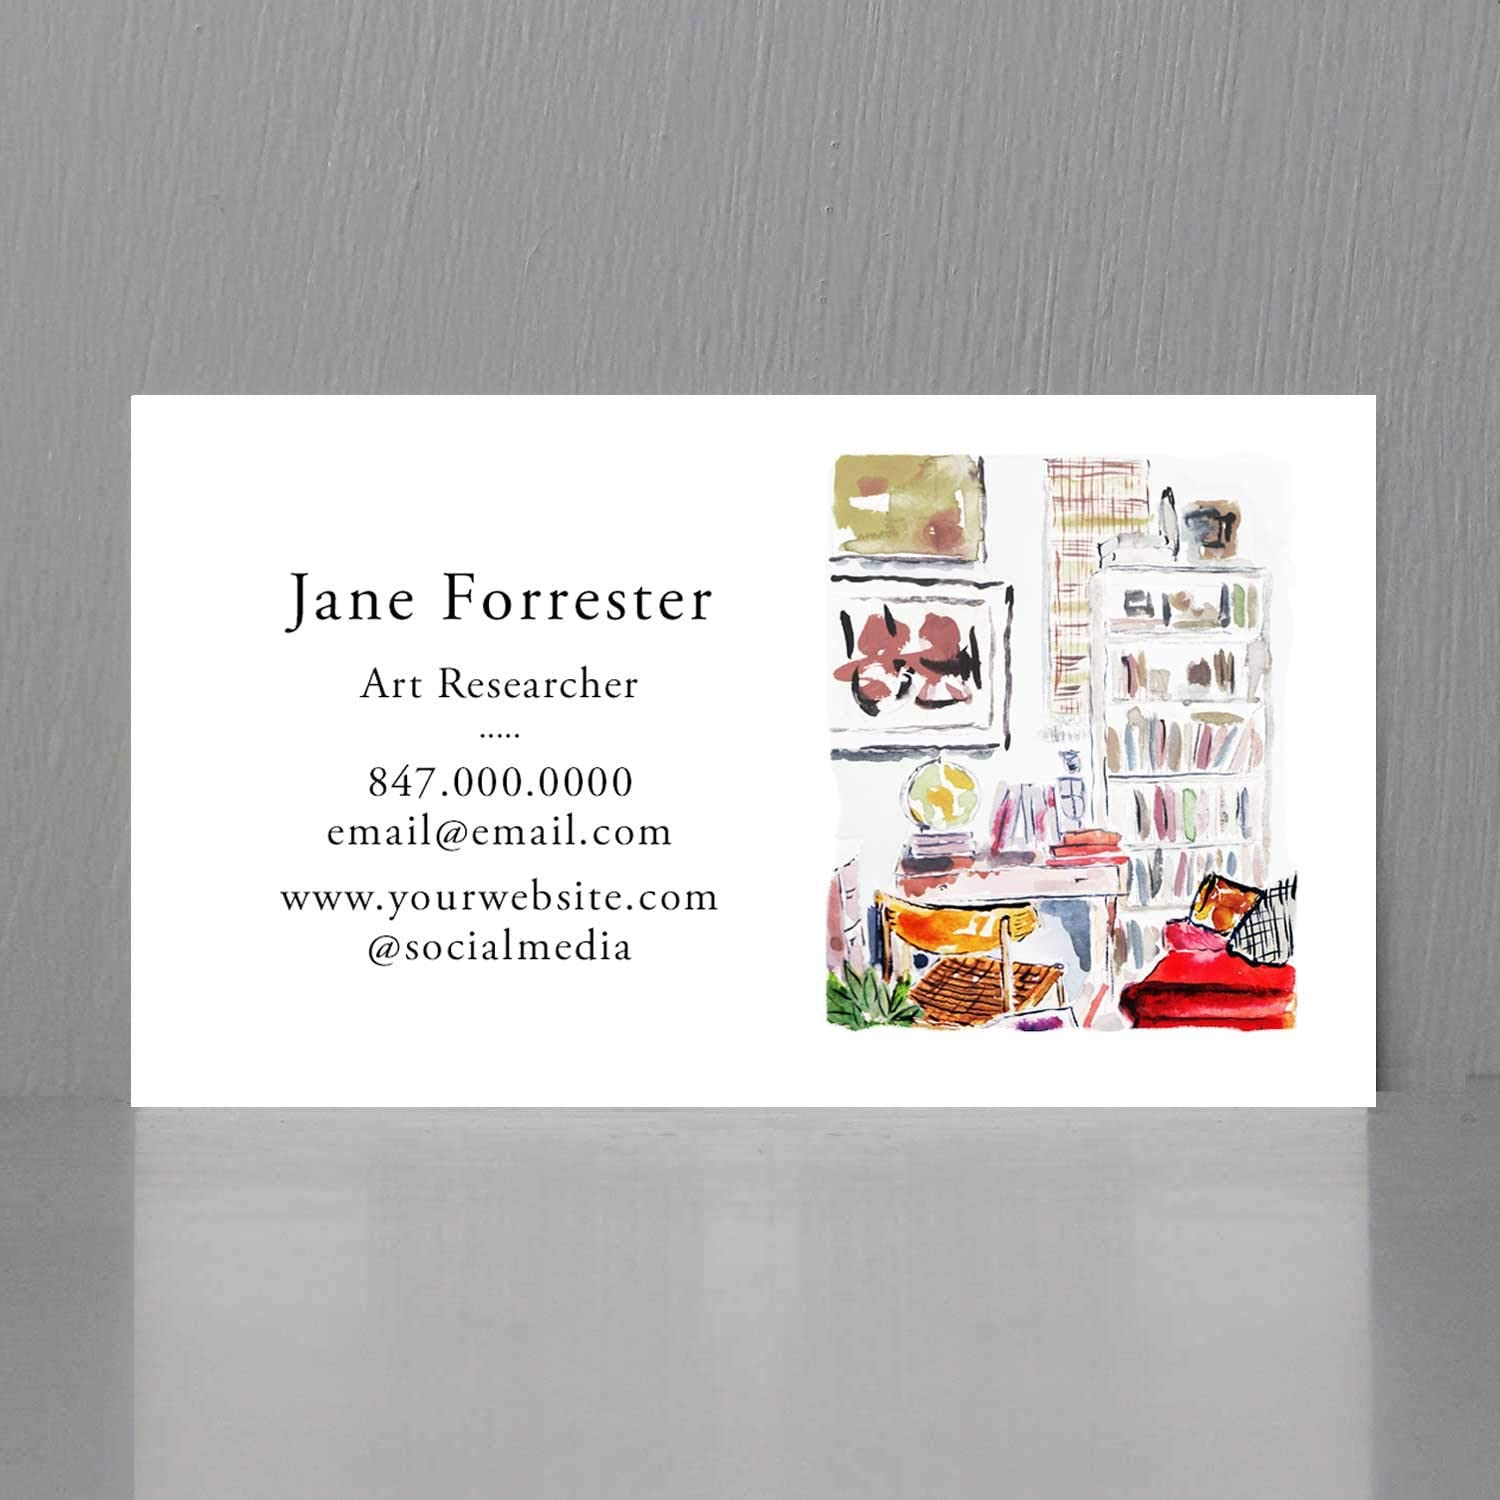 Amazon Com Business Cards For Interior Designers Home Staging Set Designer Writer And More Printing On 110lb Heavy Textured Cover Stock These Quality Cards Make An Impressive Impact 100 Office Products